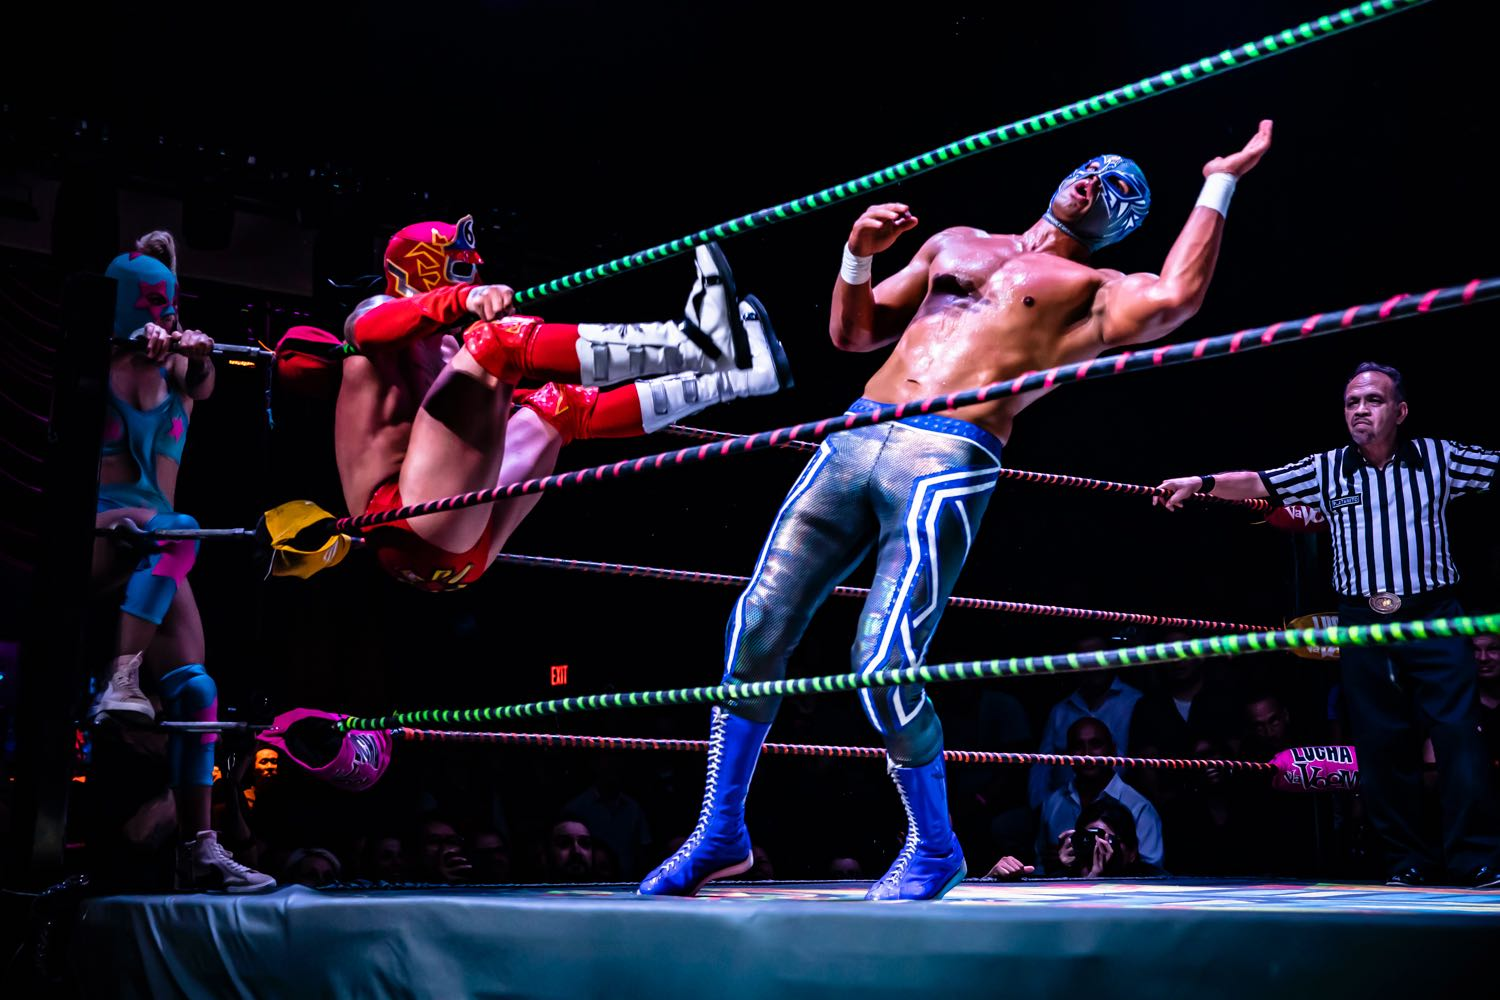 Lucha Vavoom @ The Mayan 8/8/19. Photo by Cortney Armitage (@CortneyArmitage) for www.BlurredCulture.com.